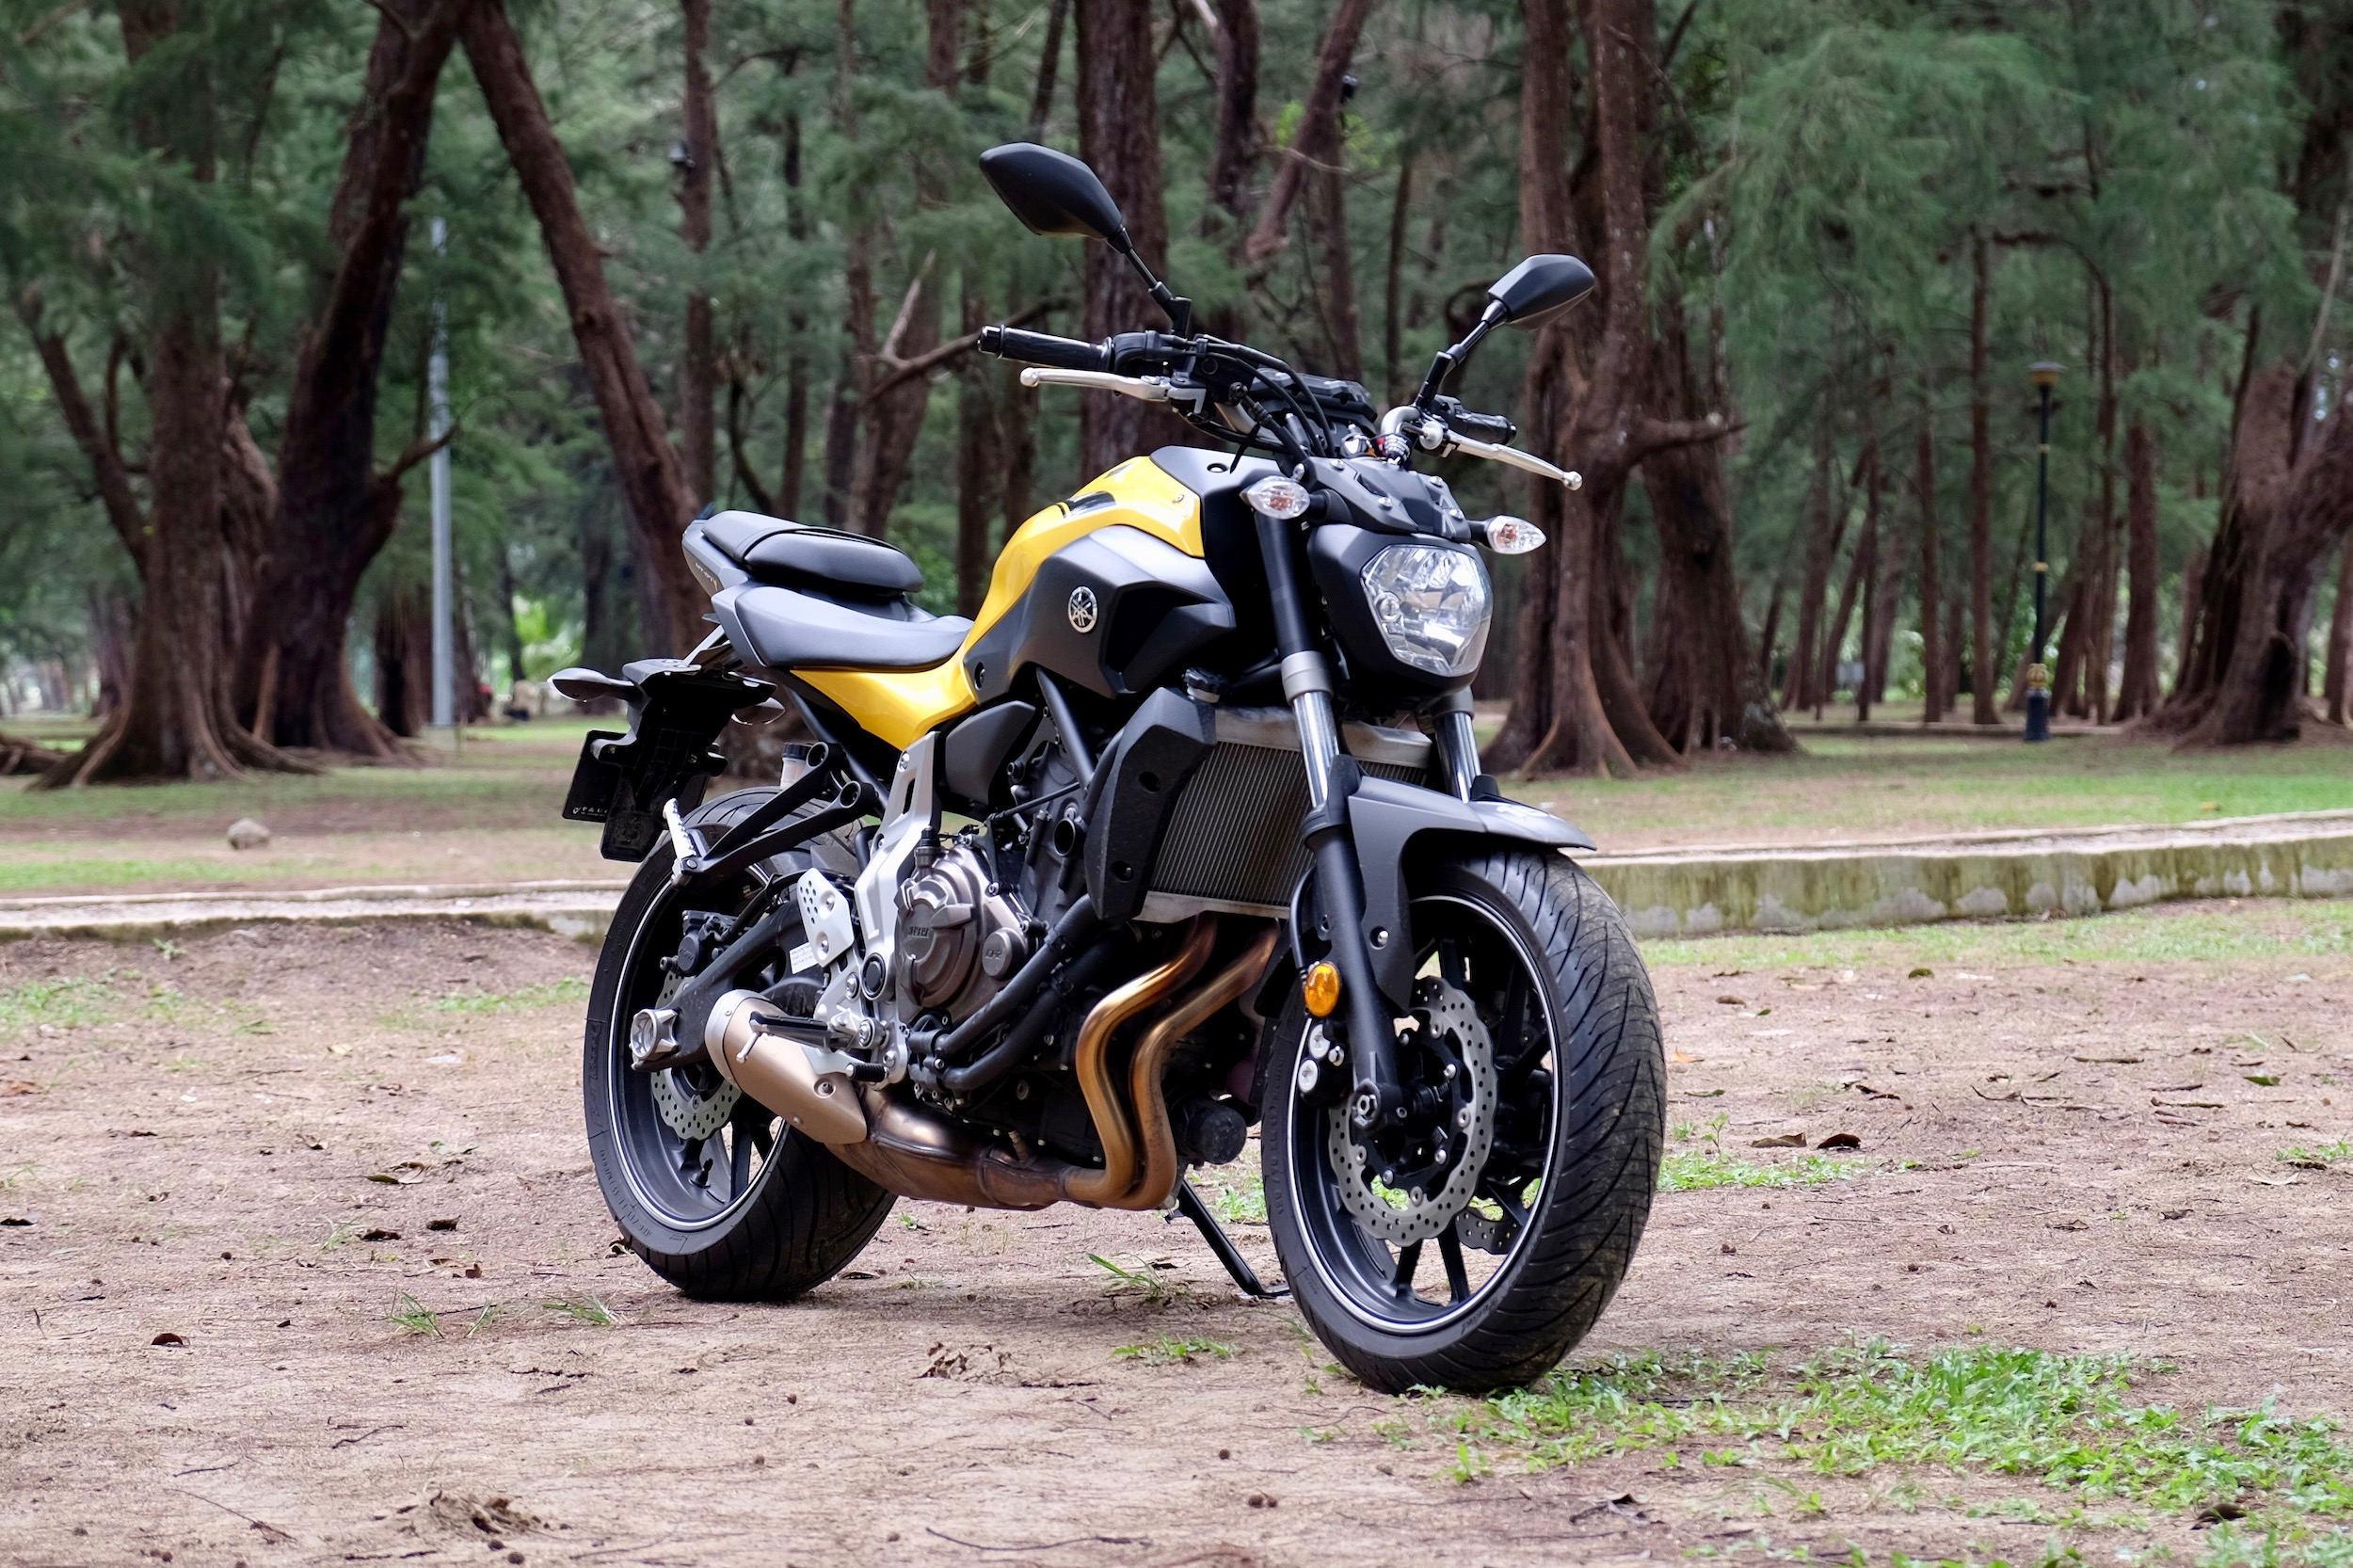 yamaha mt 07 review light in weight and on the pockets too